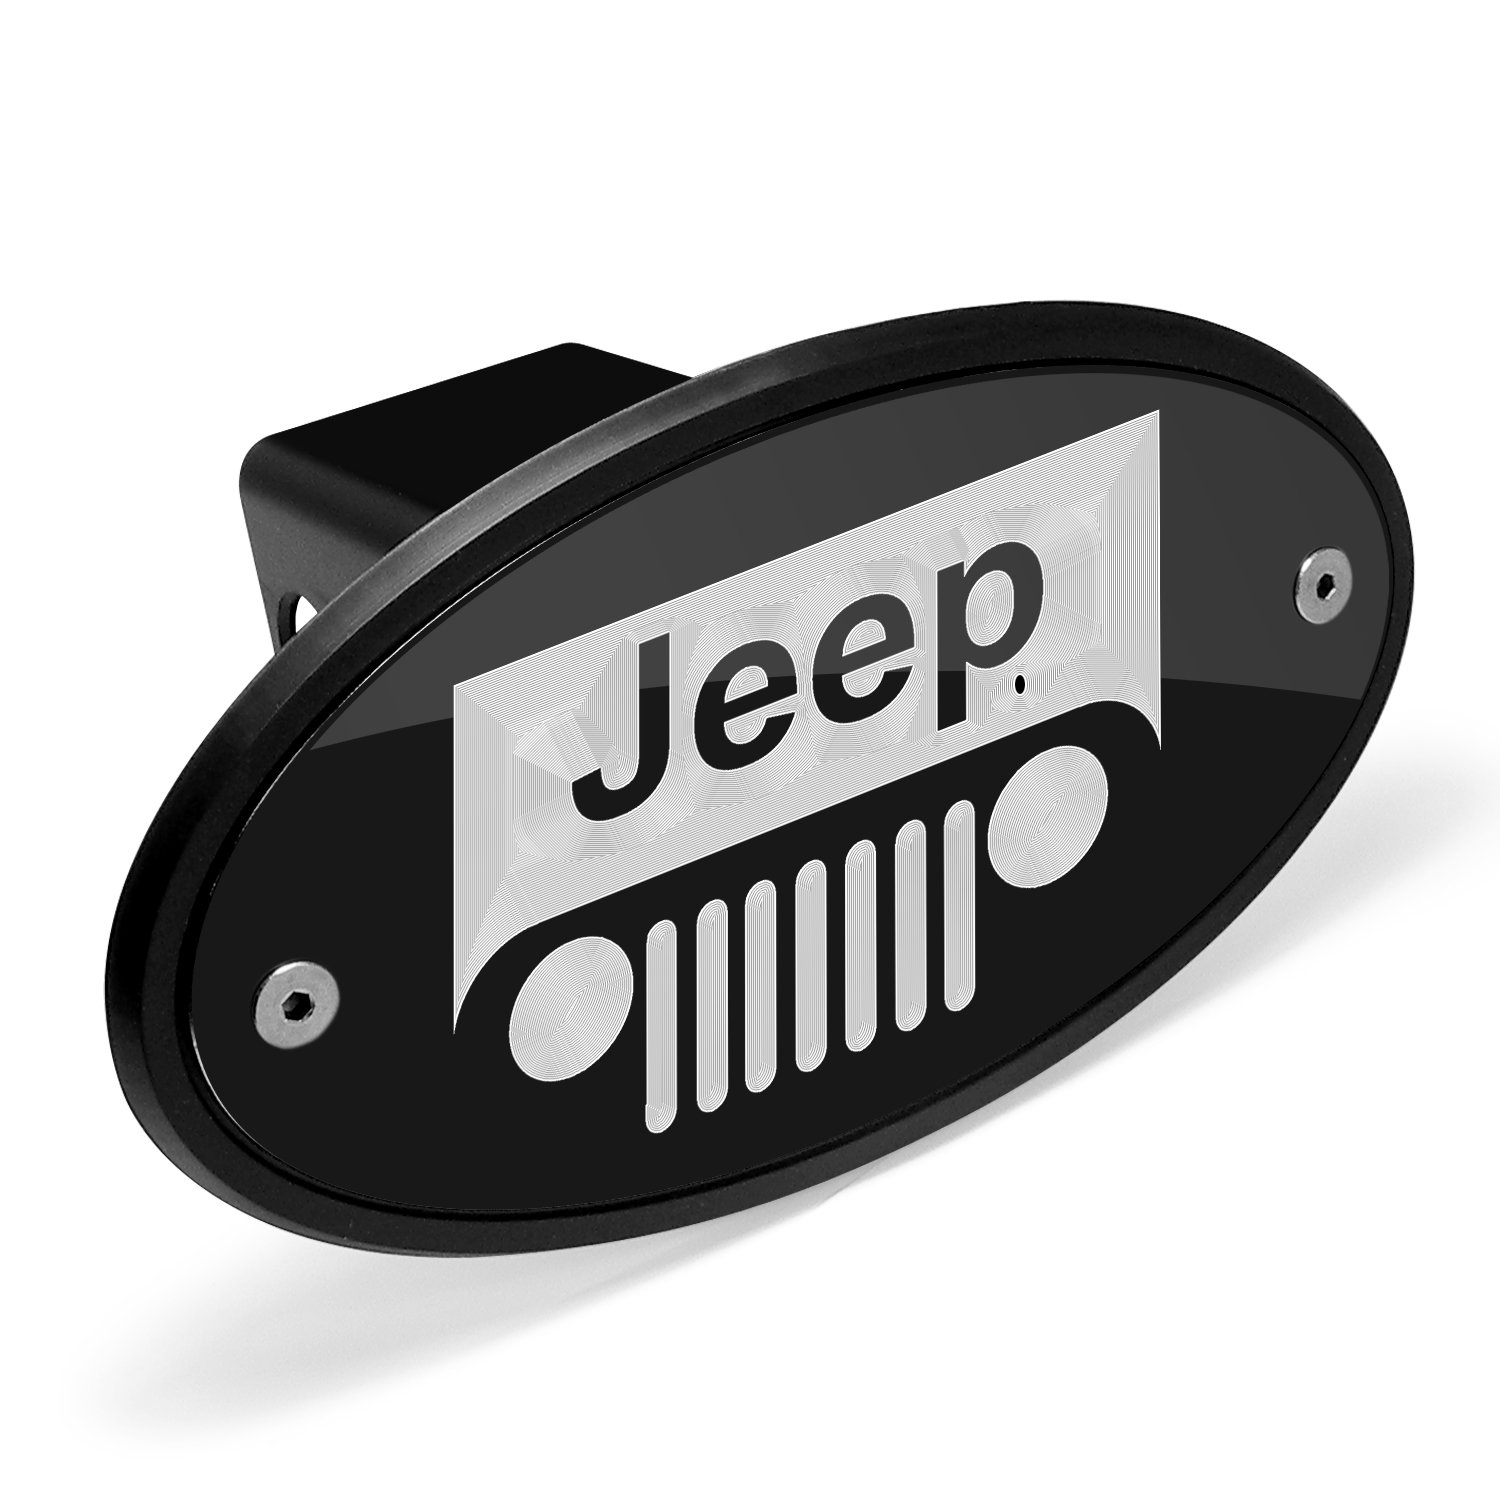 Jeep Grill Logo Black Metal Plate 2 inch Tow Hitch Cover Universal Brass